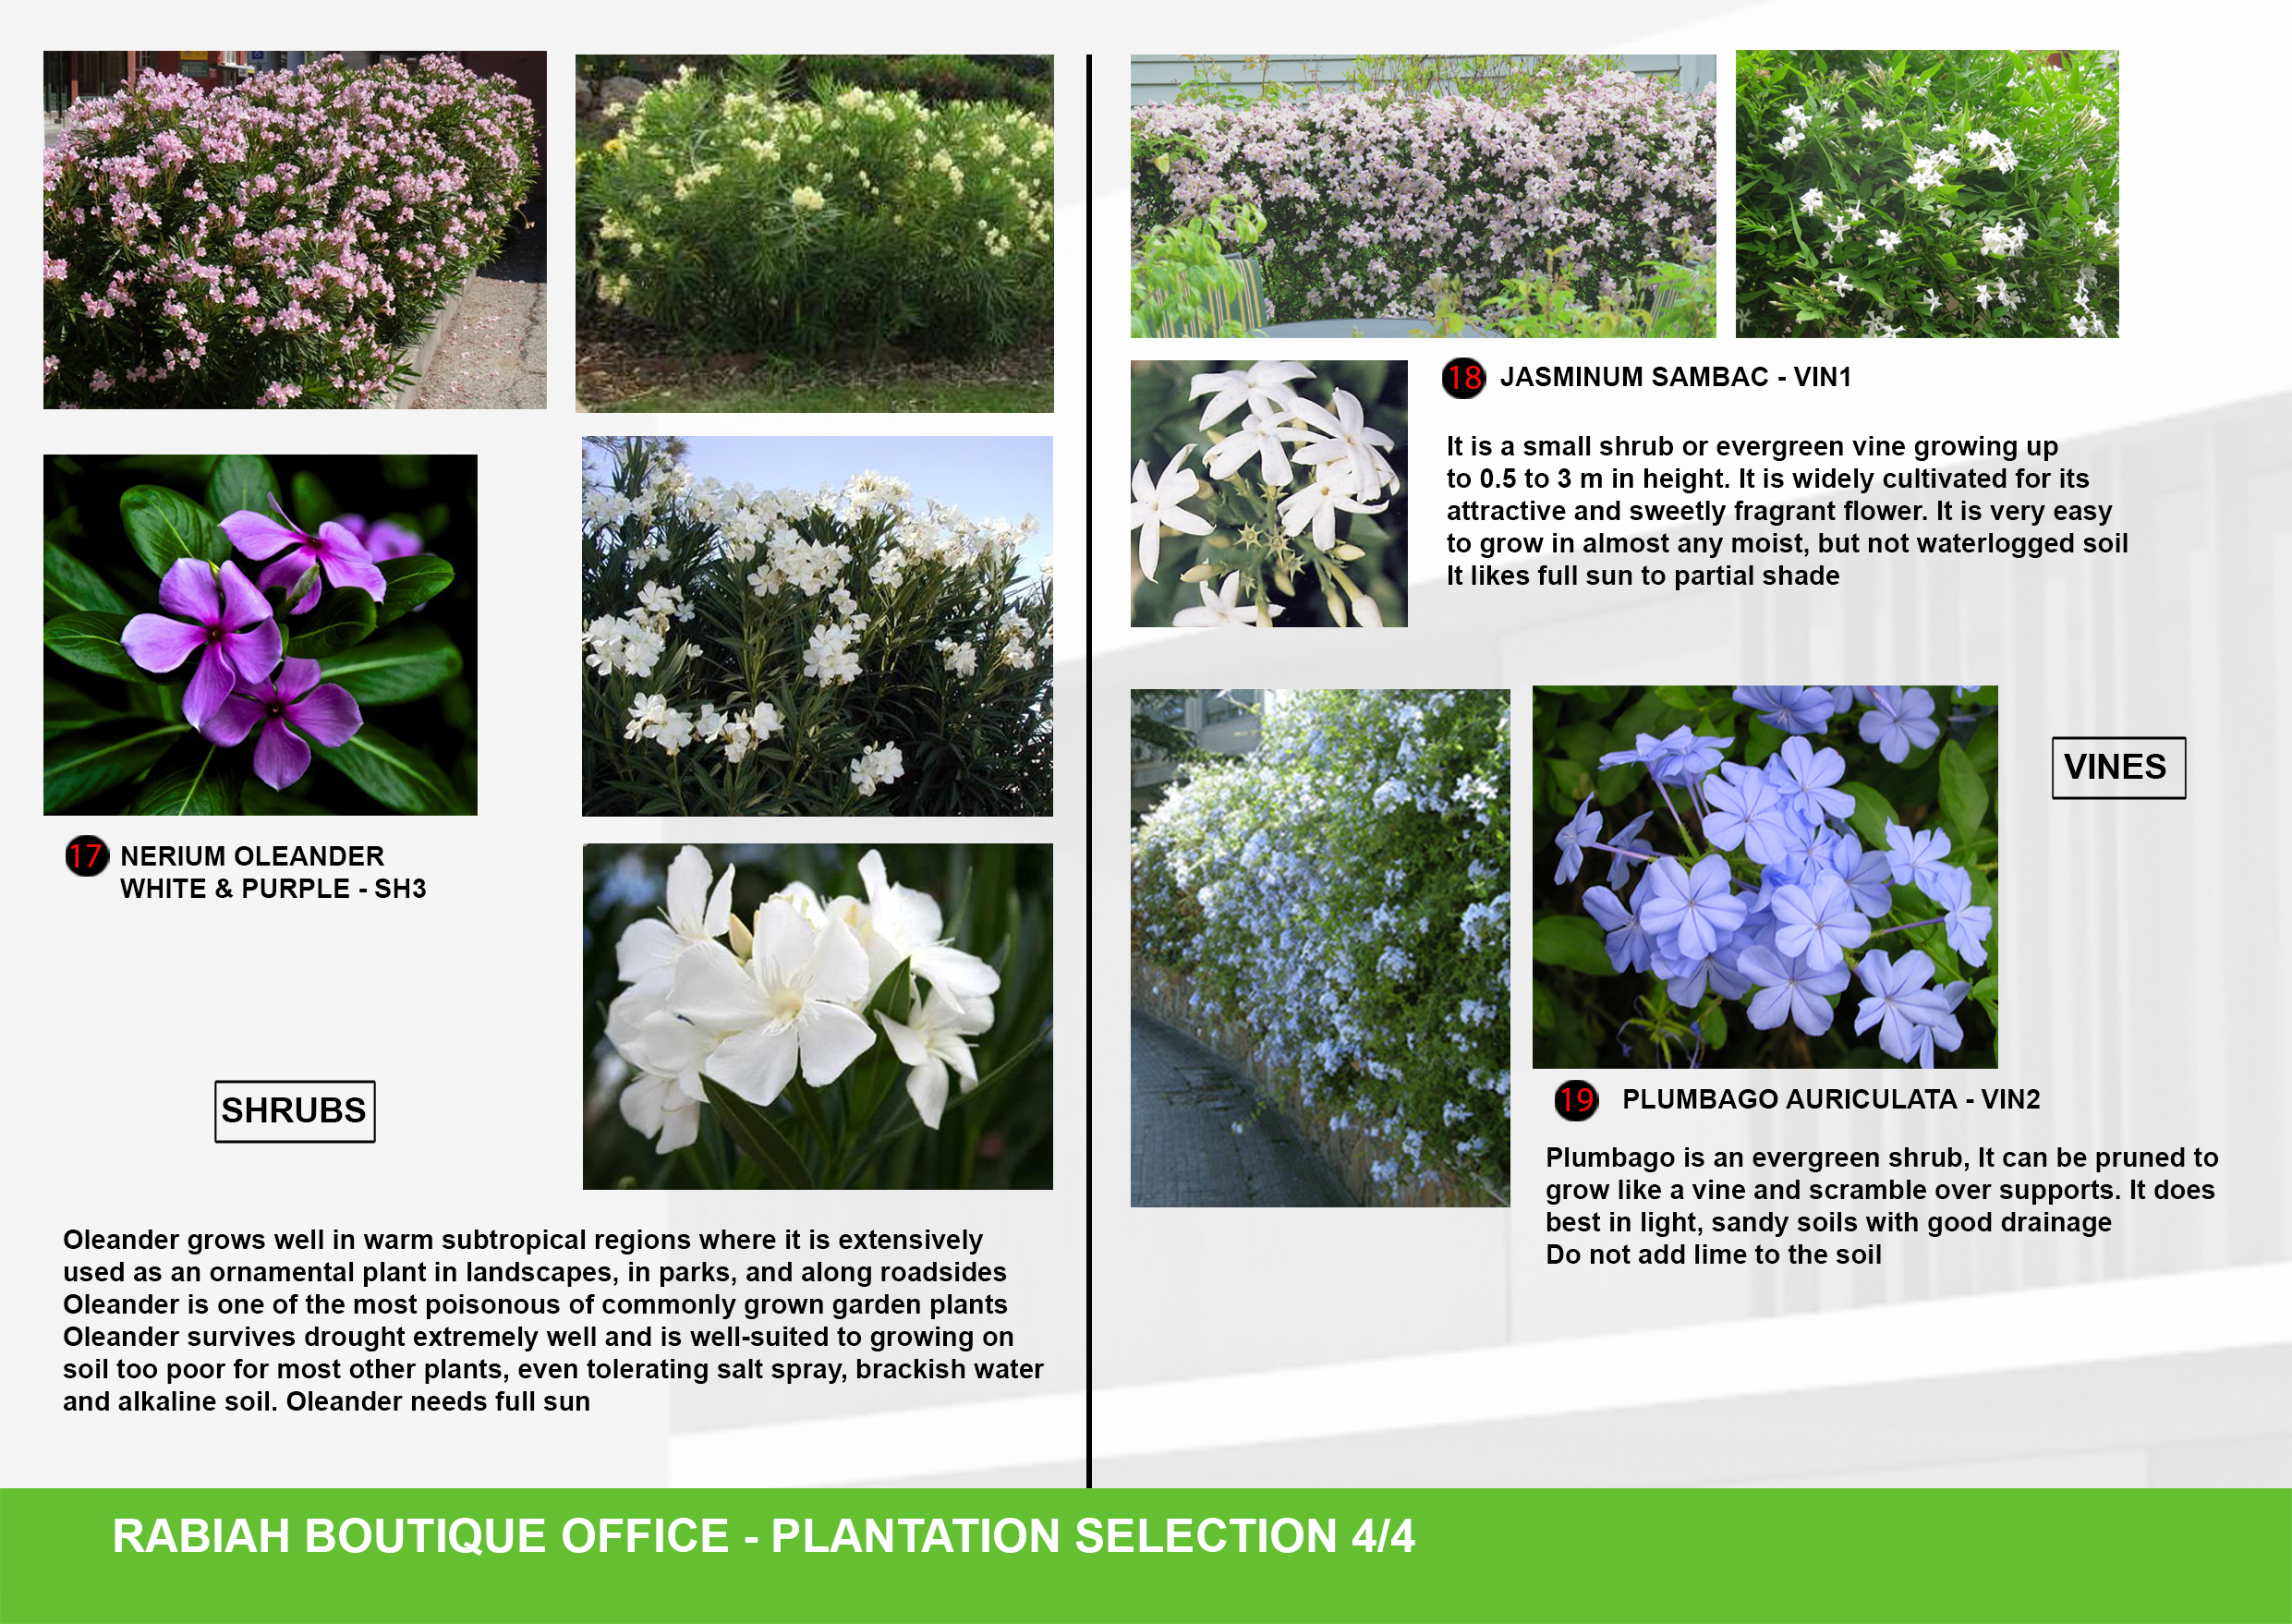 10-A3-Plantation Selection 04